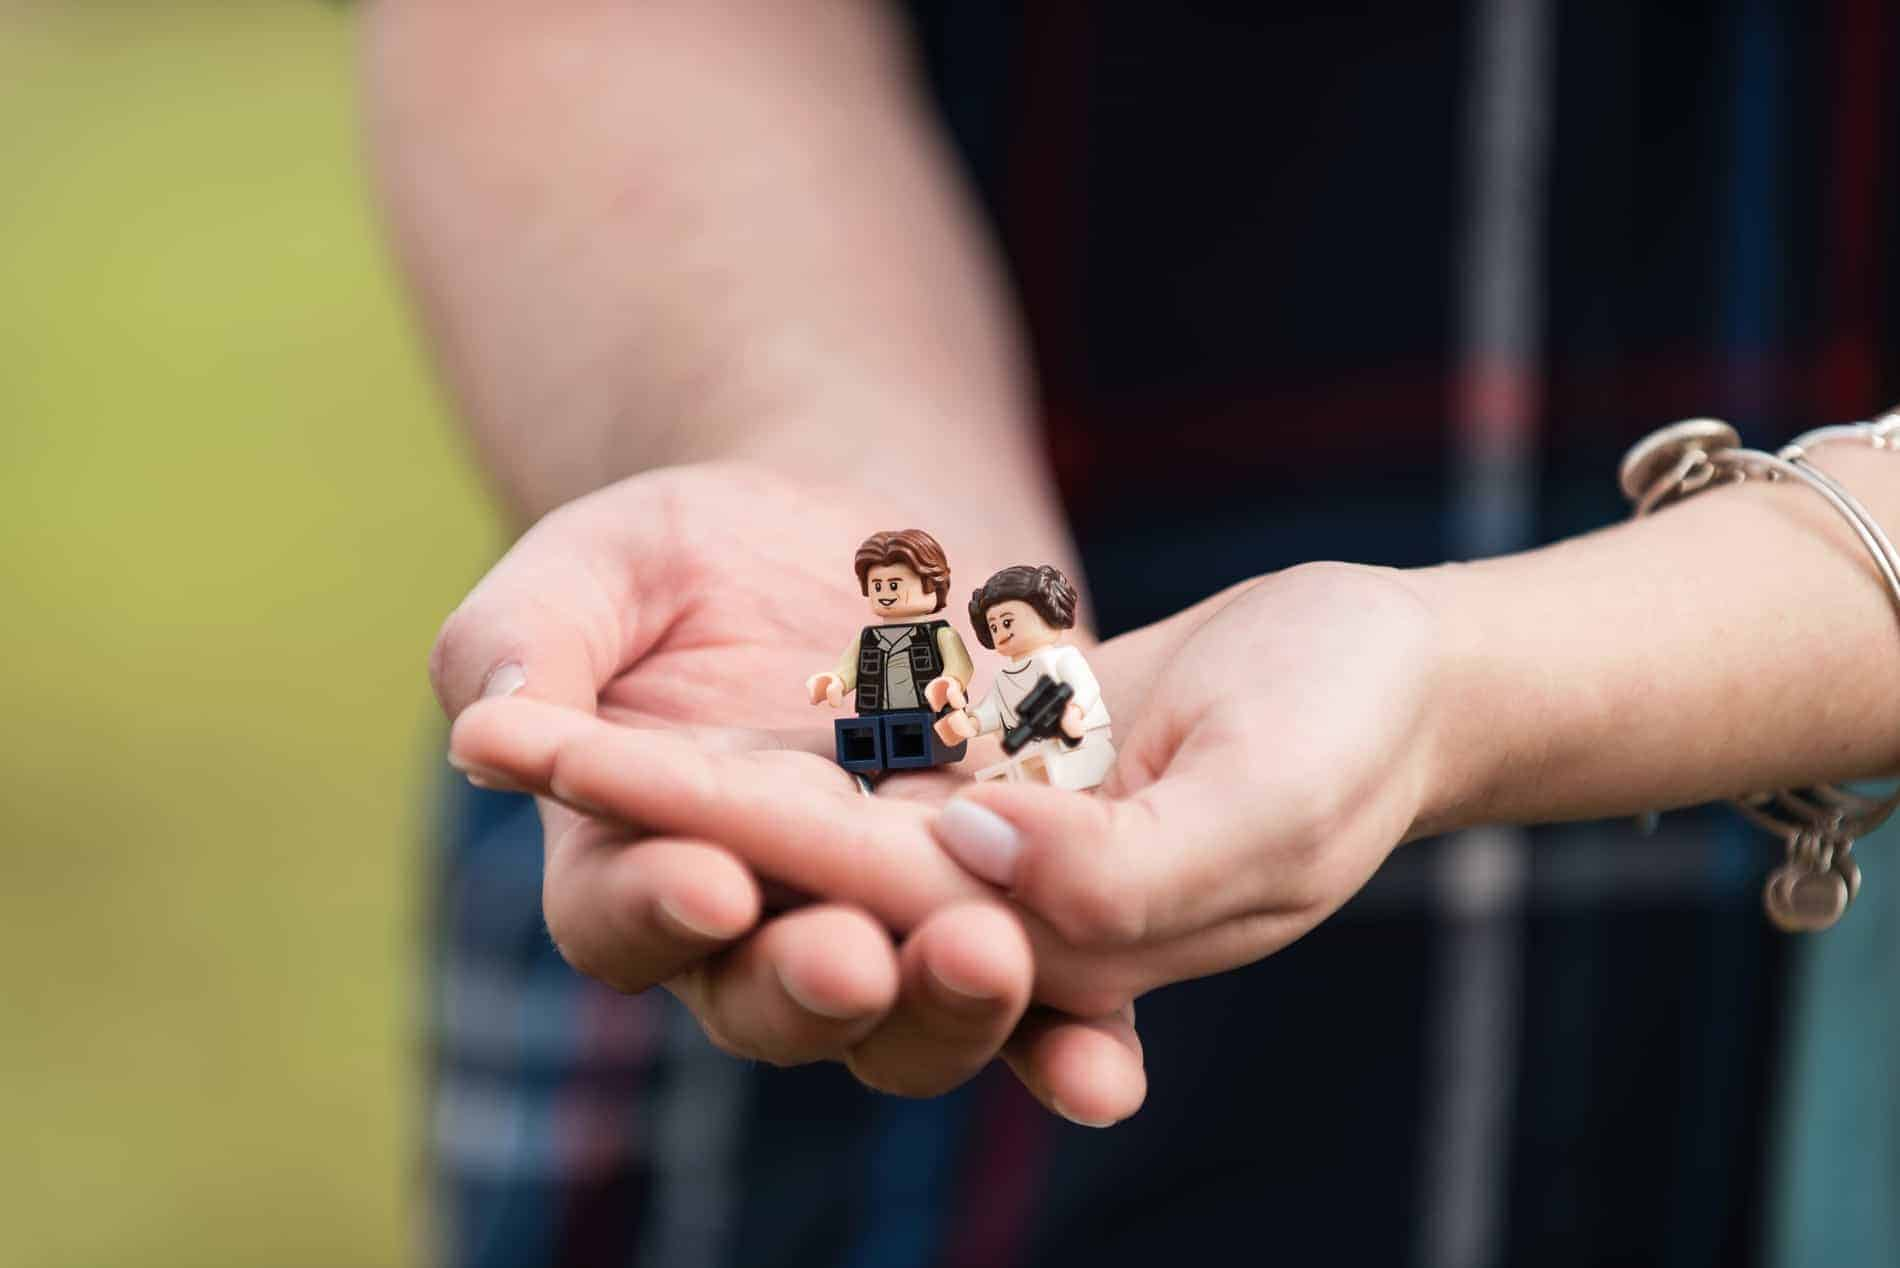 Lego Mini Figs used during a Star Wars Engagement Session